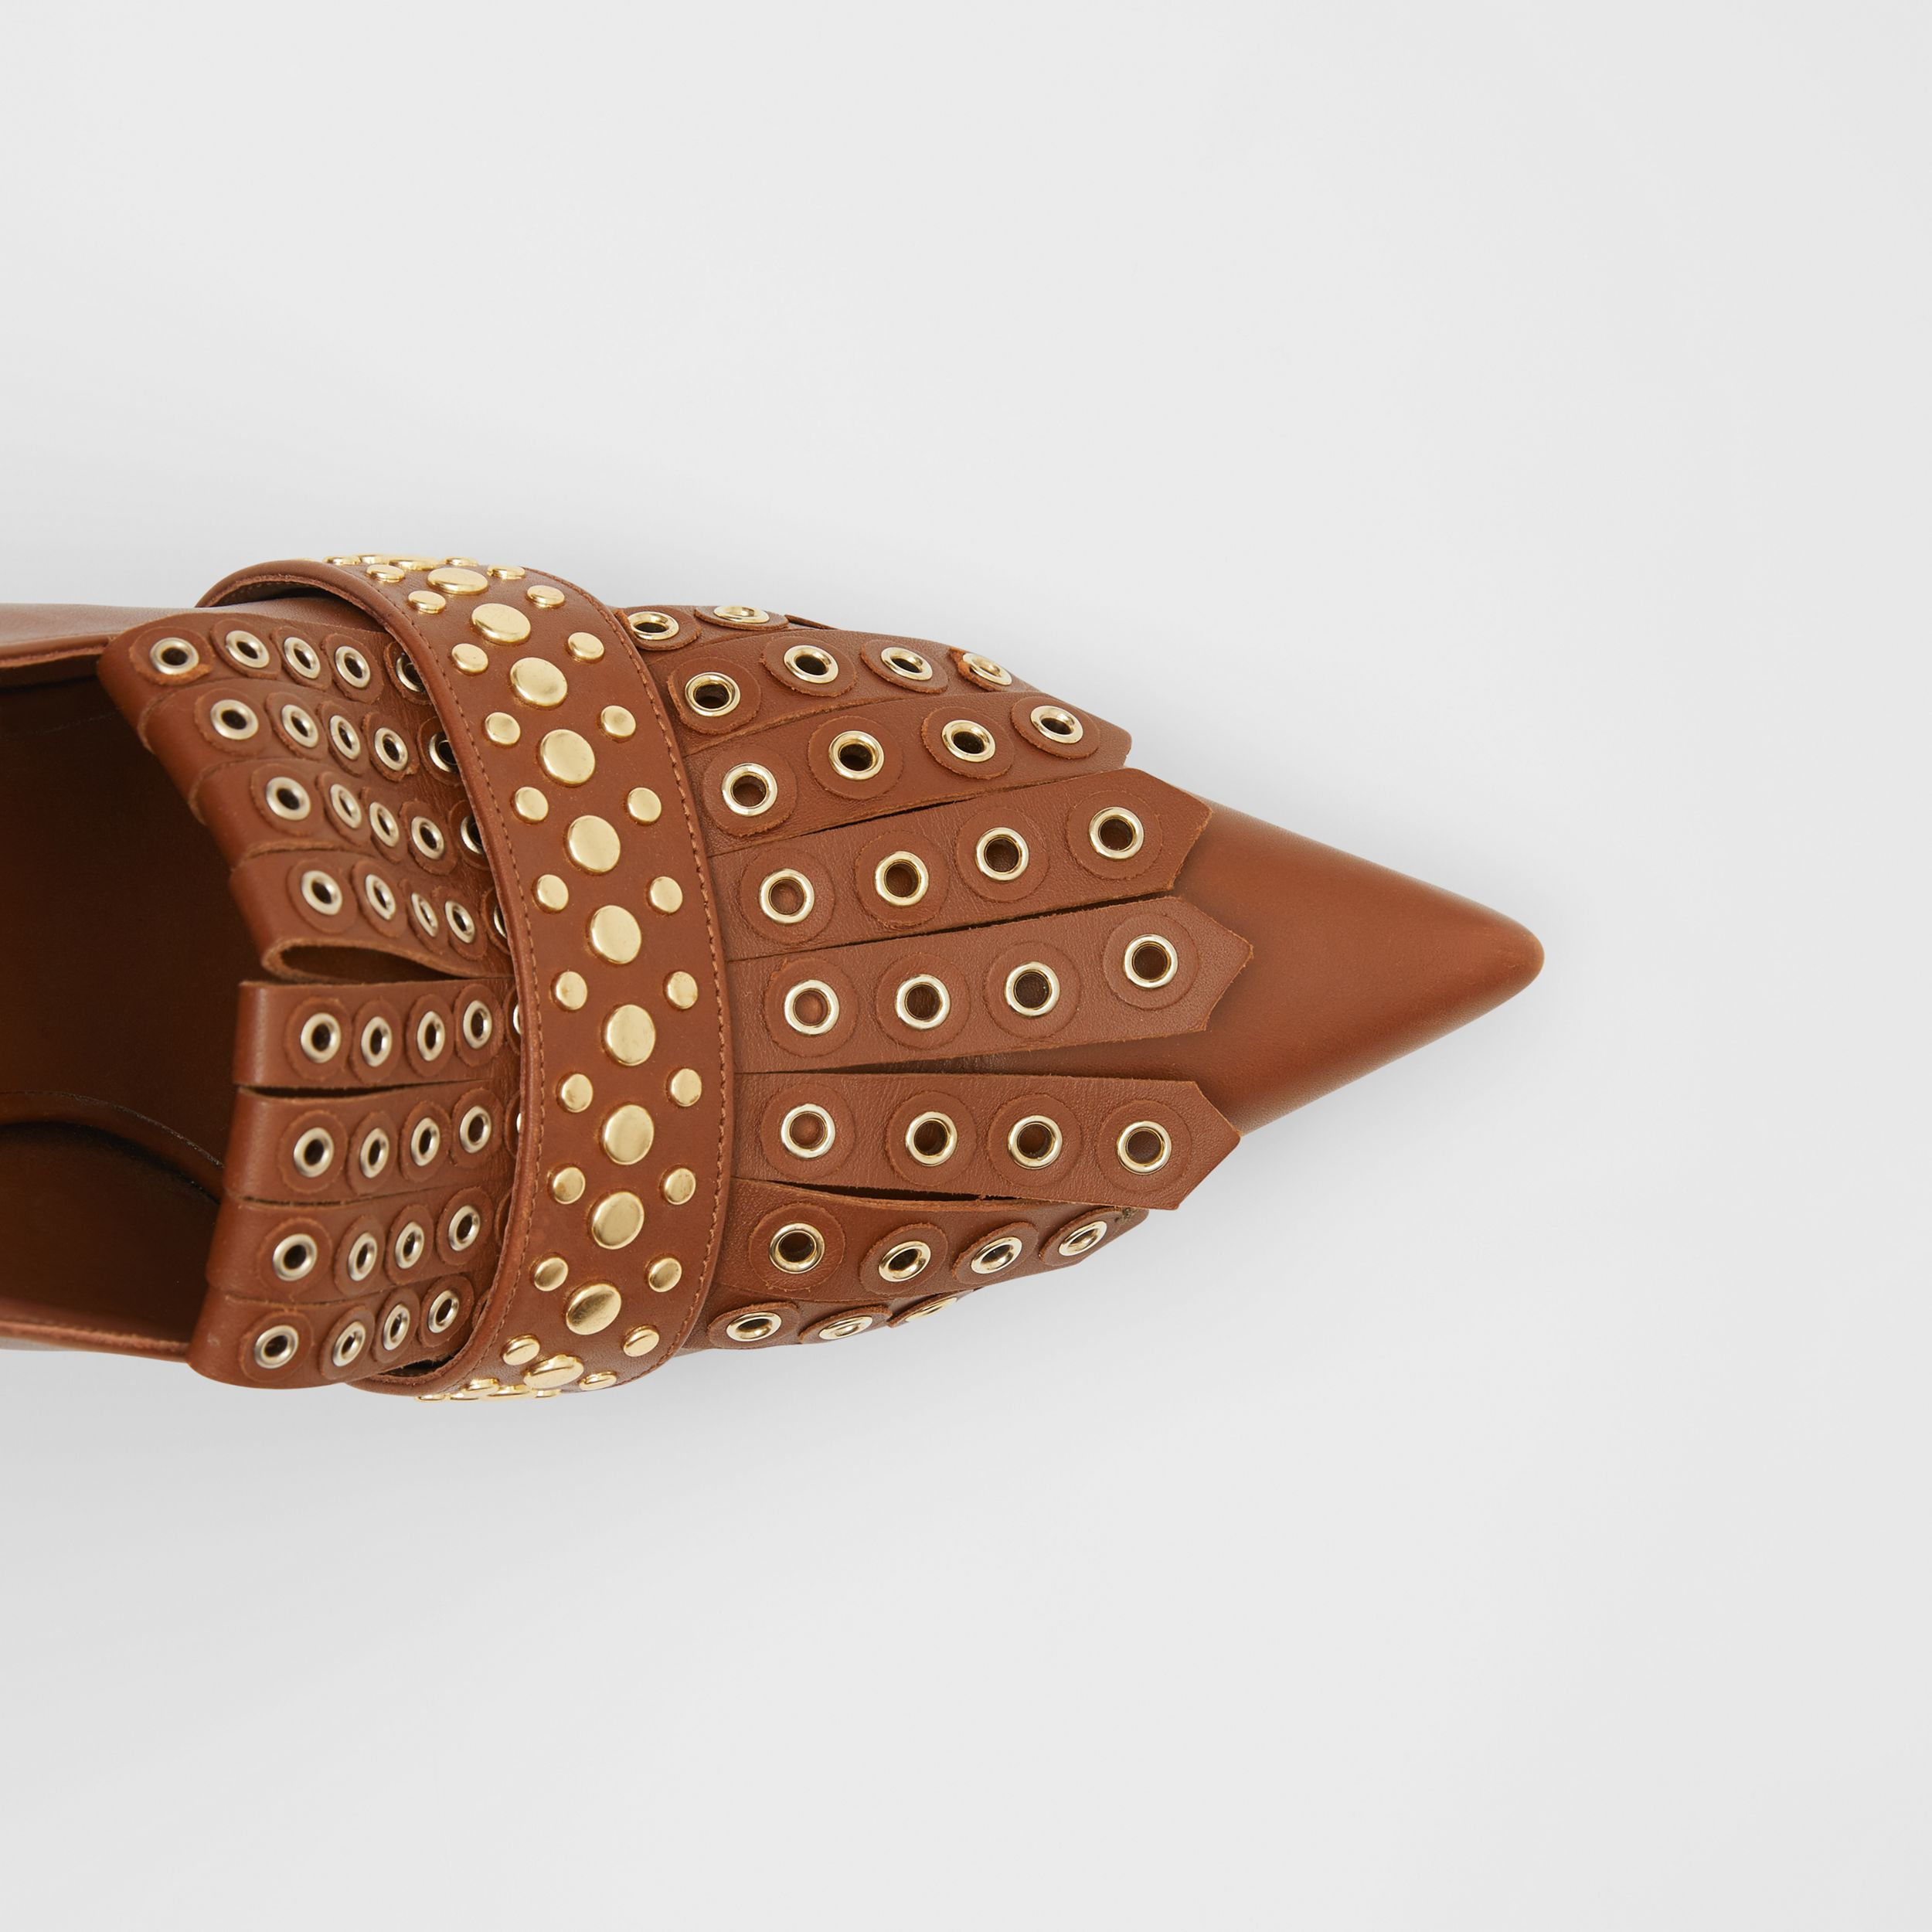 Studded Kiltie Fringe Leather Point-toe Pumps in Tan - Women | Burberry United Kingdom - 2